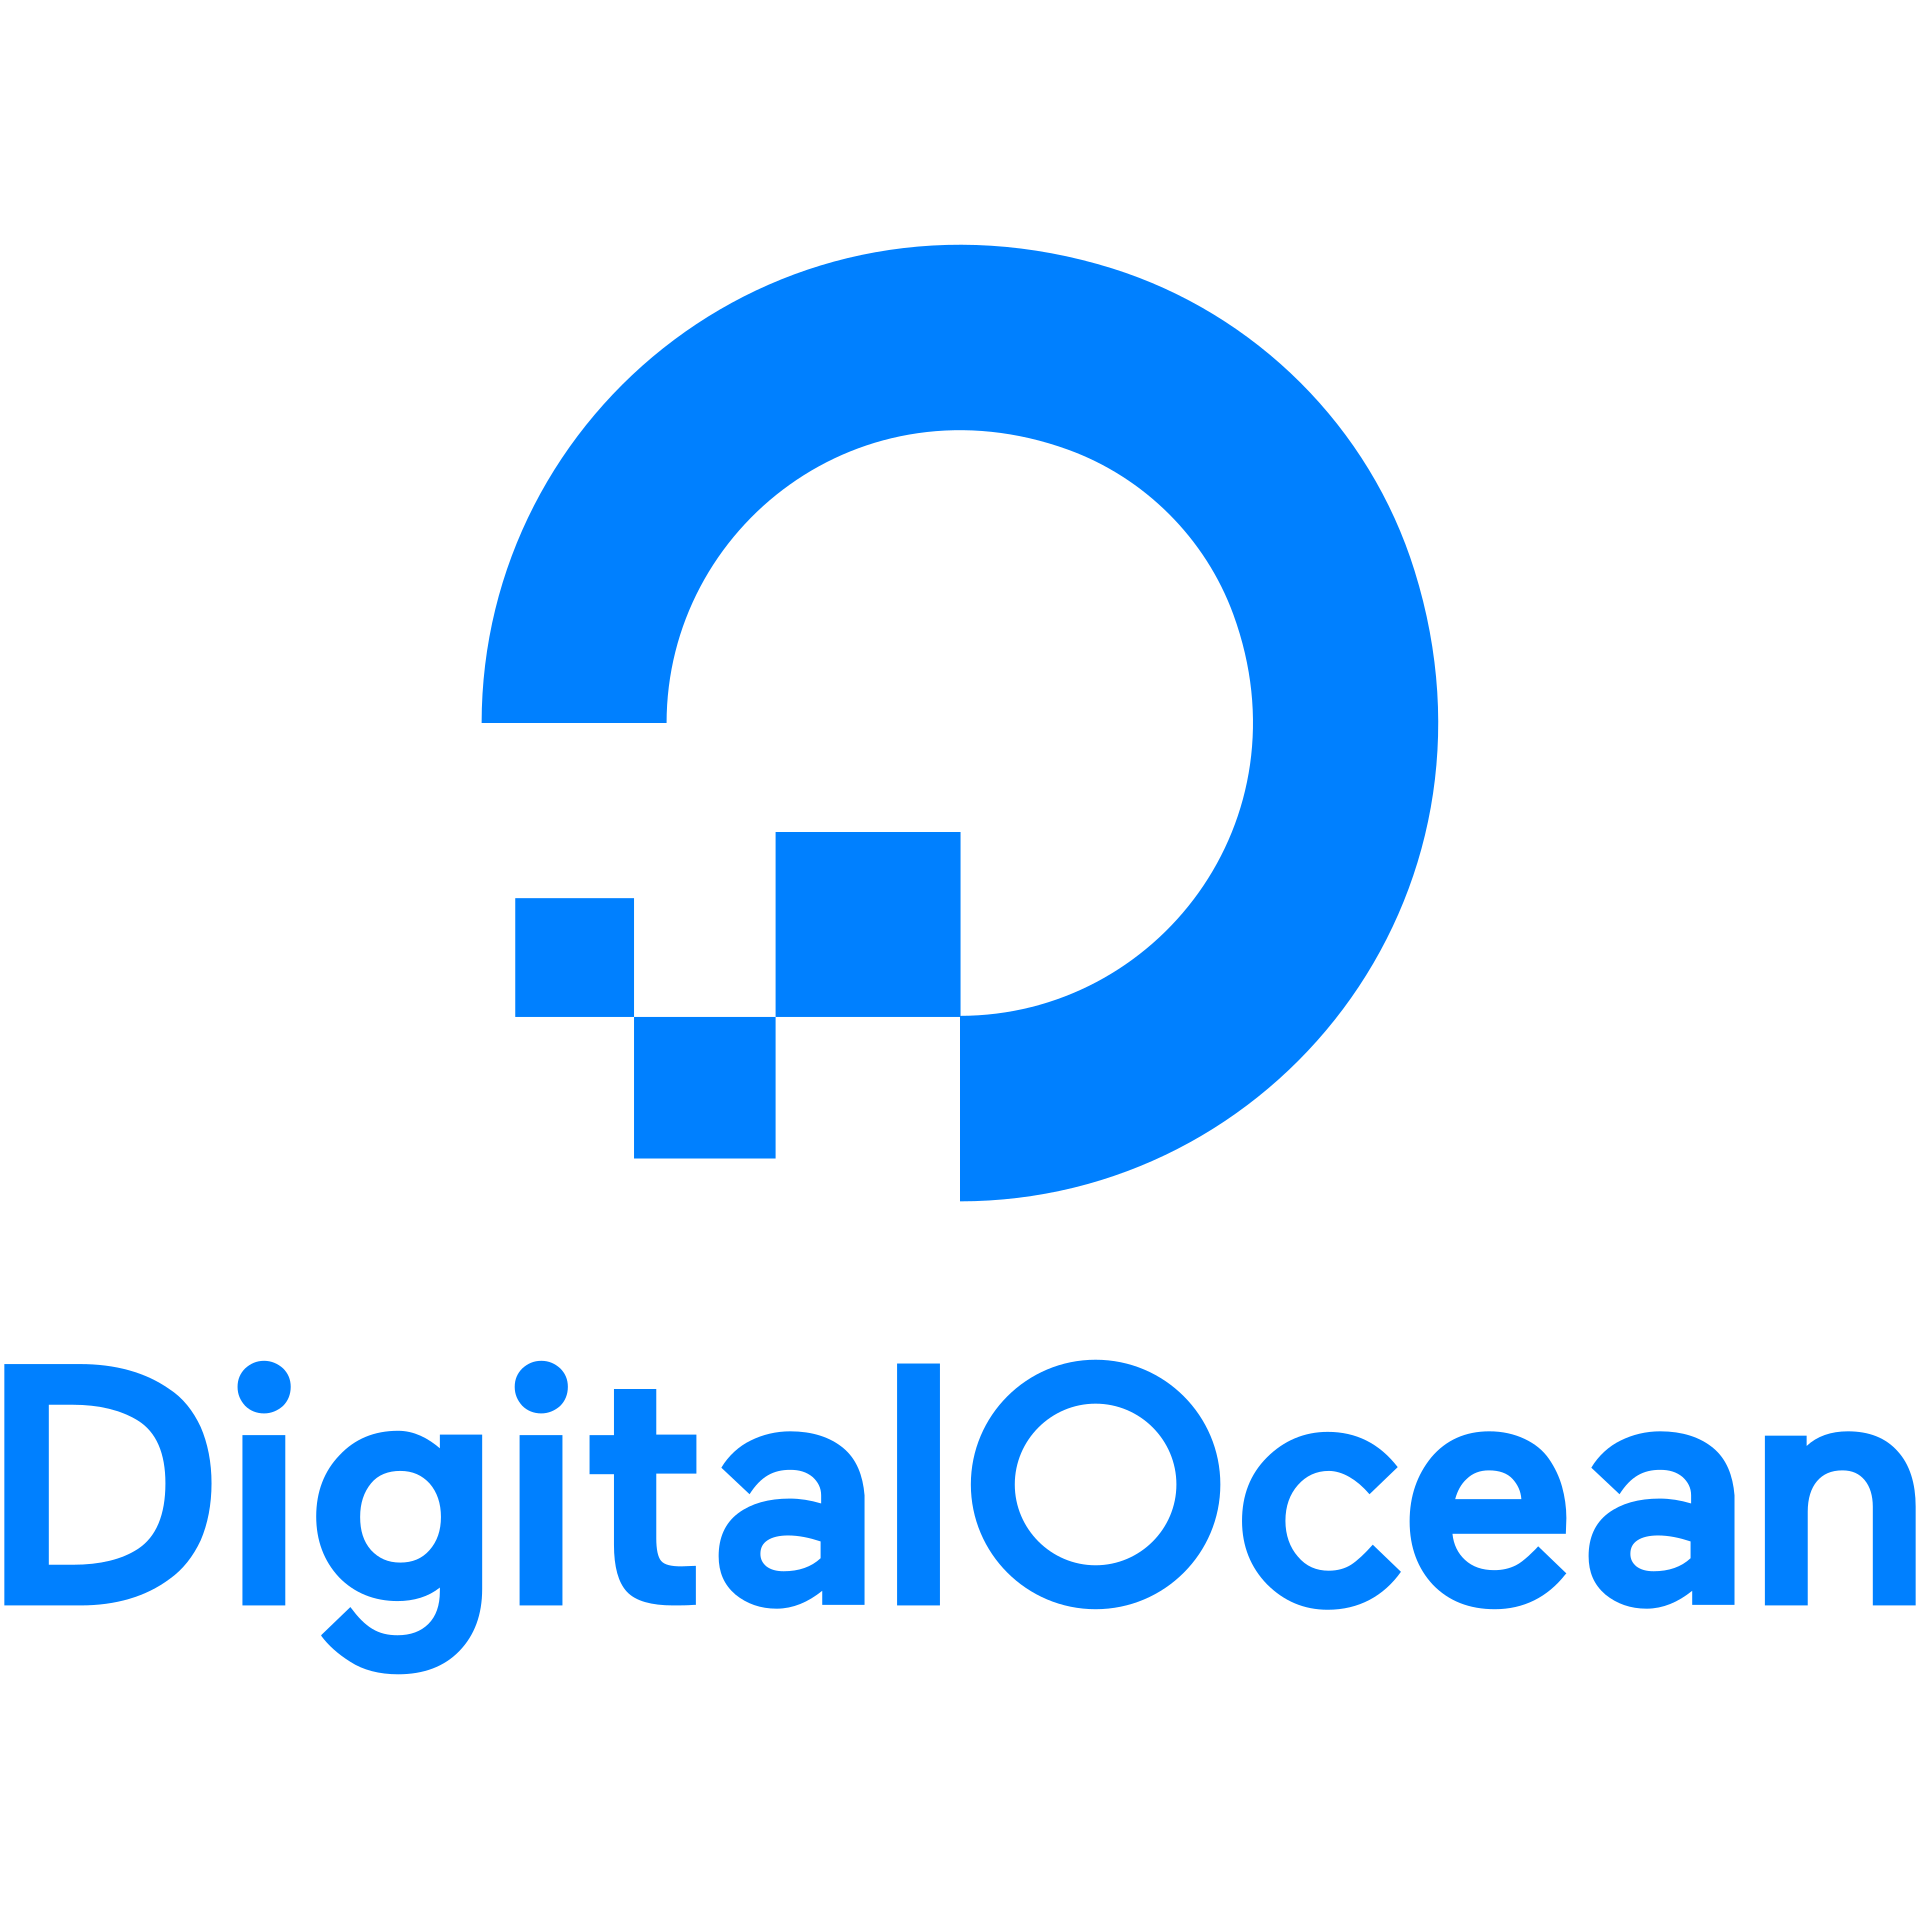 DigitalOcean Partner logo